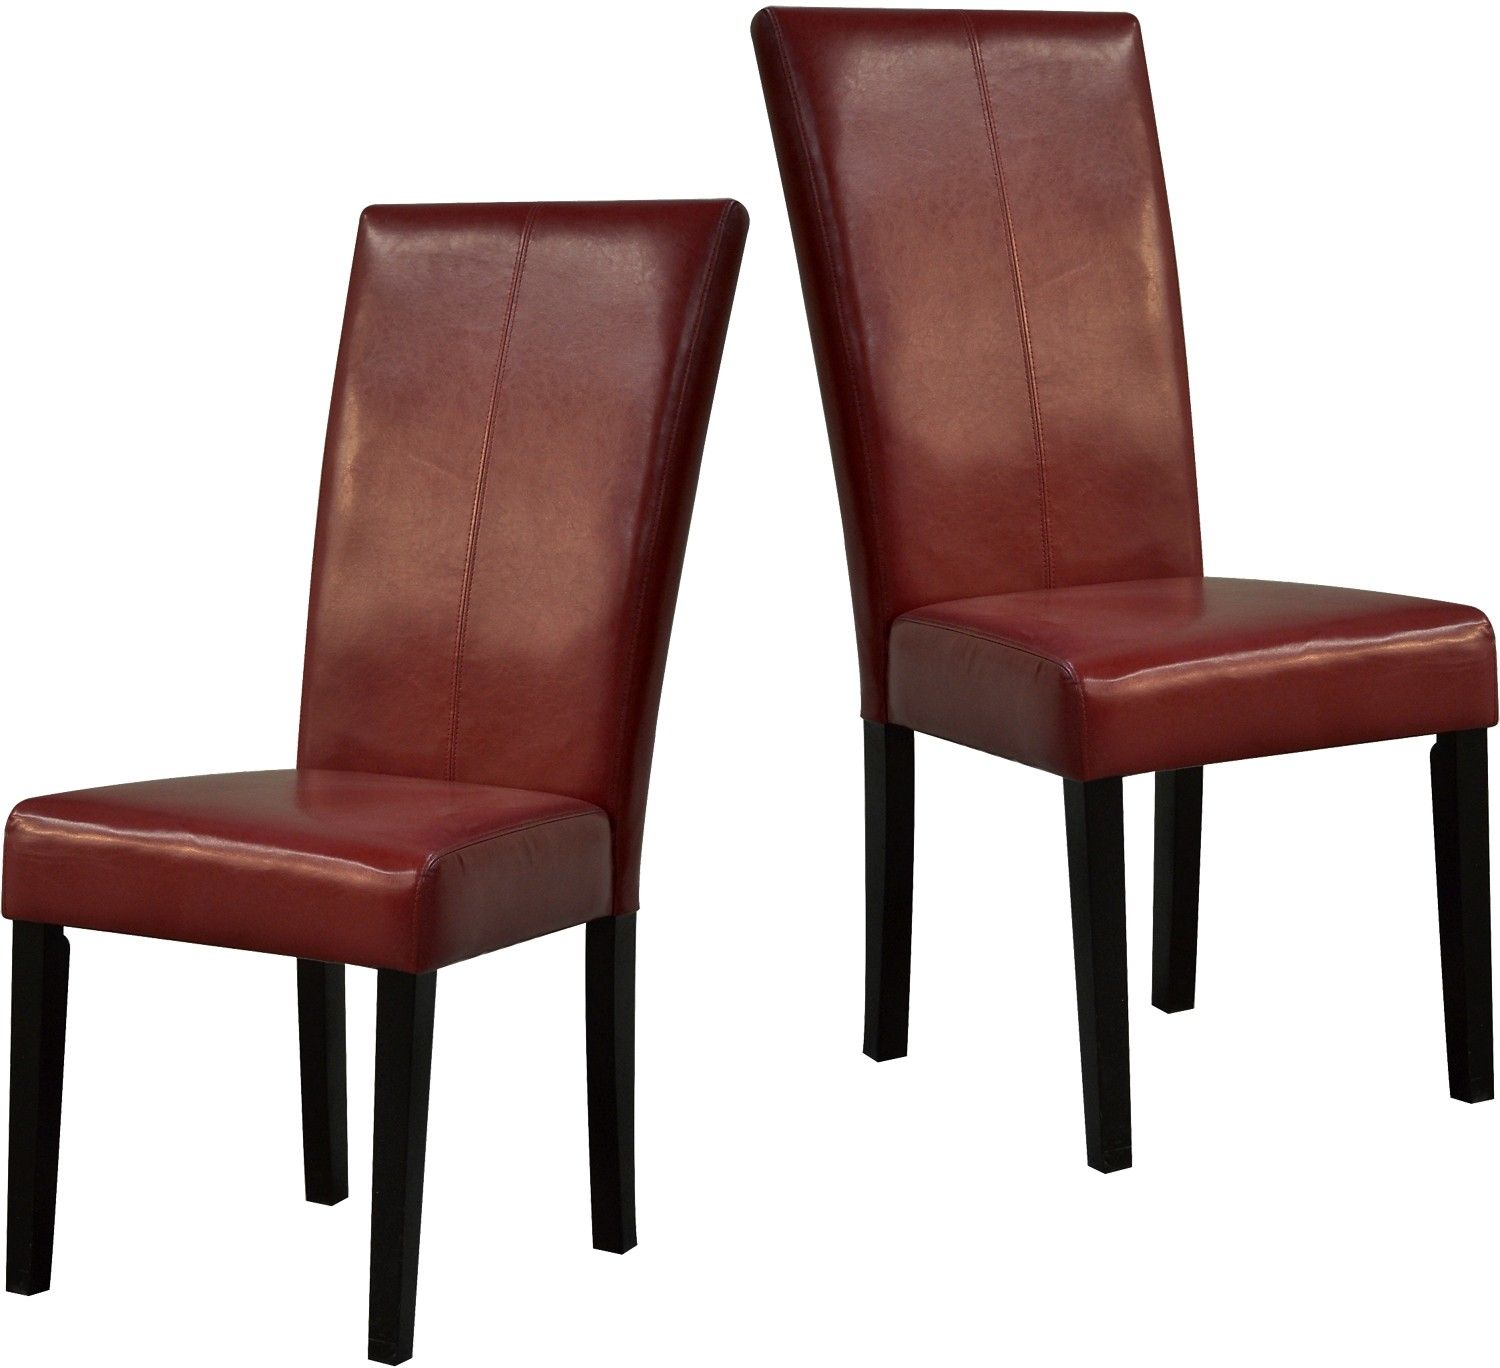 Red Dining Chairs  Package Of Two  The Brick  A Apartment Best Dining Room Chairs Red Inspiration Design